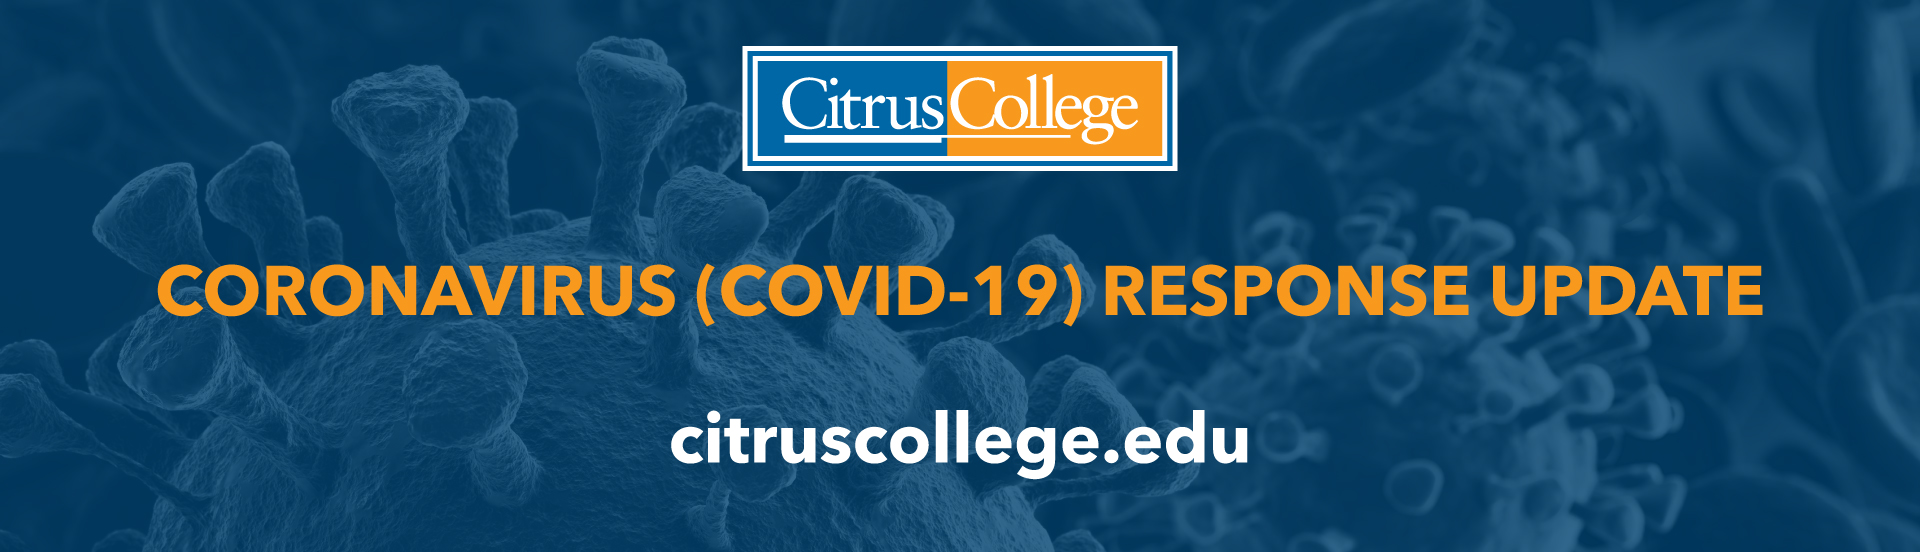 COVID 19 banner with Citrus College logo